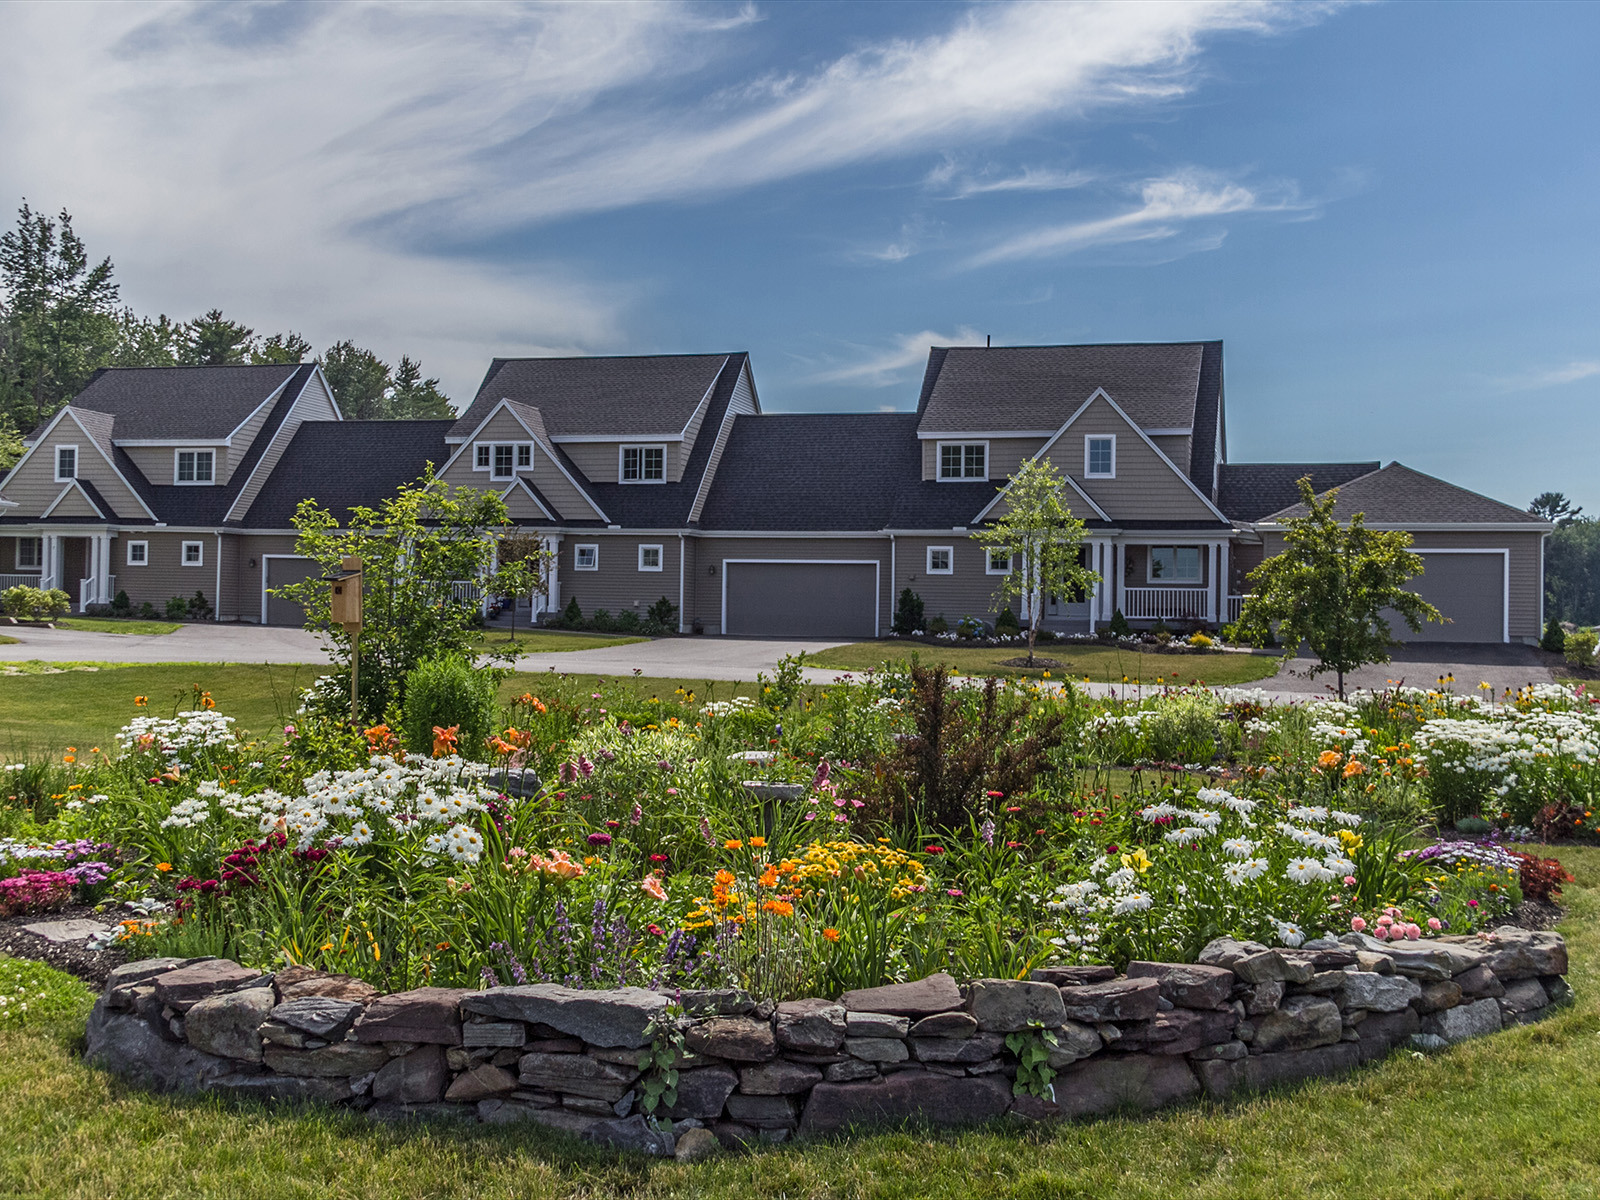 Condominium for Sale at 1 Scarlett Sage Lane ,# 44 1 Scarlett Sage Lane # 44 Brunswick, Maine 04011 United States